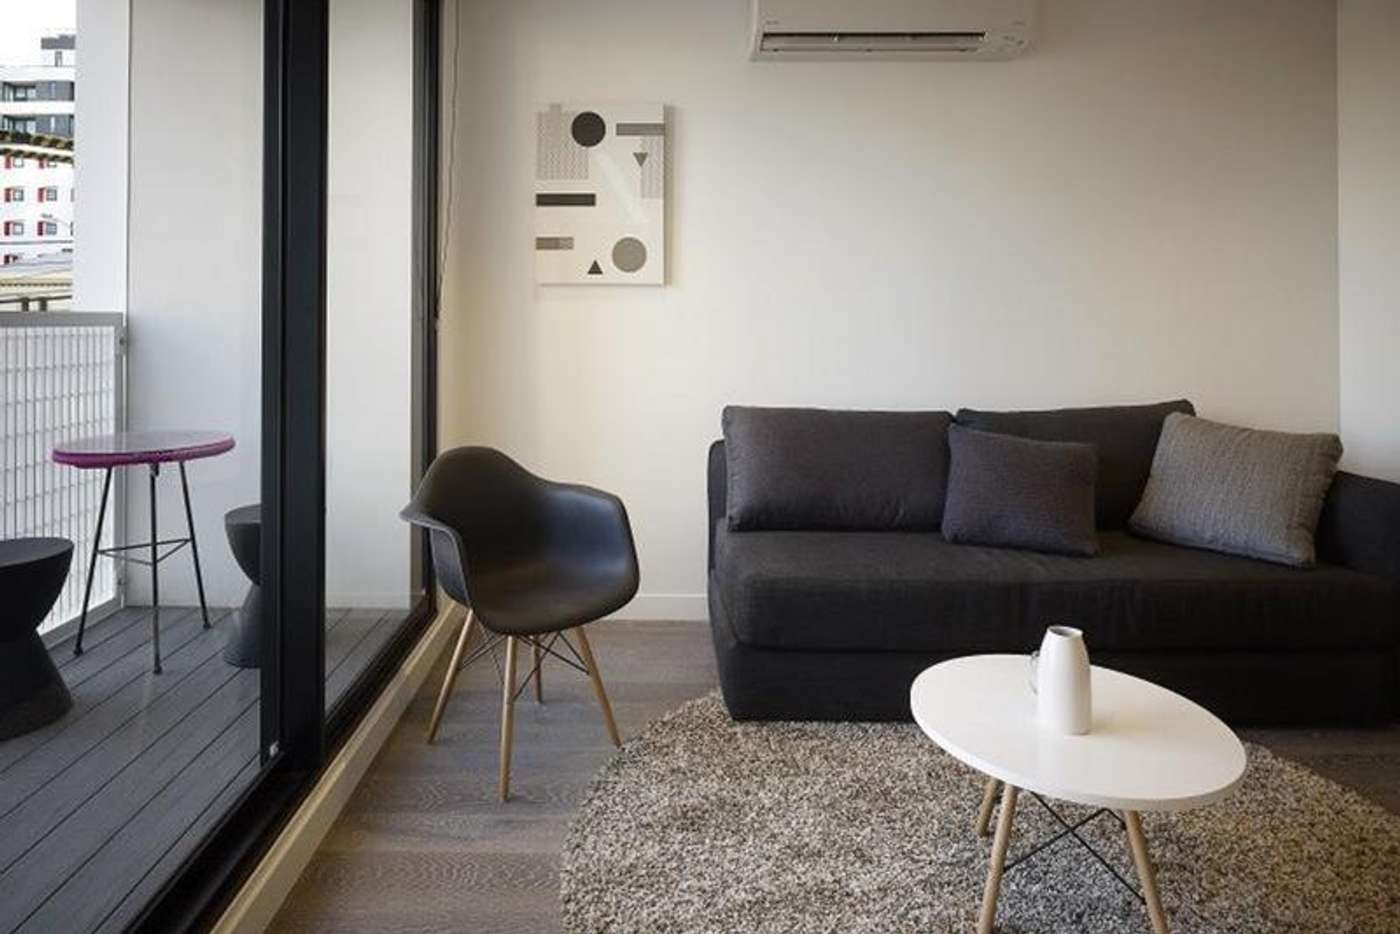 Main view of Homely house listing, 906/518 Swanston Street, Carlton VIC 3053